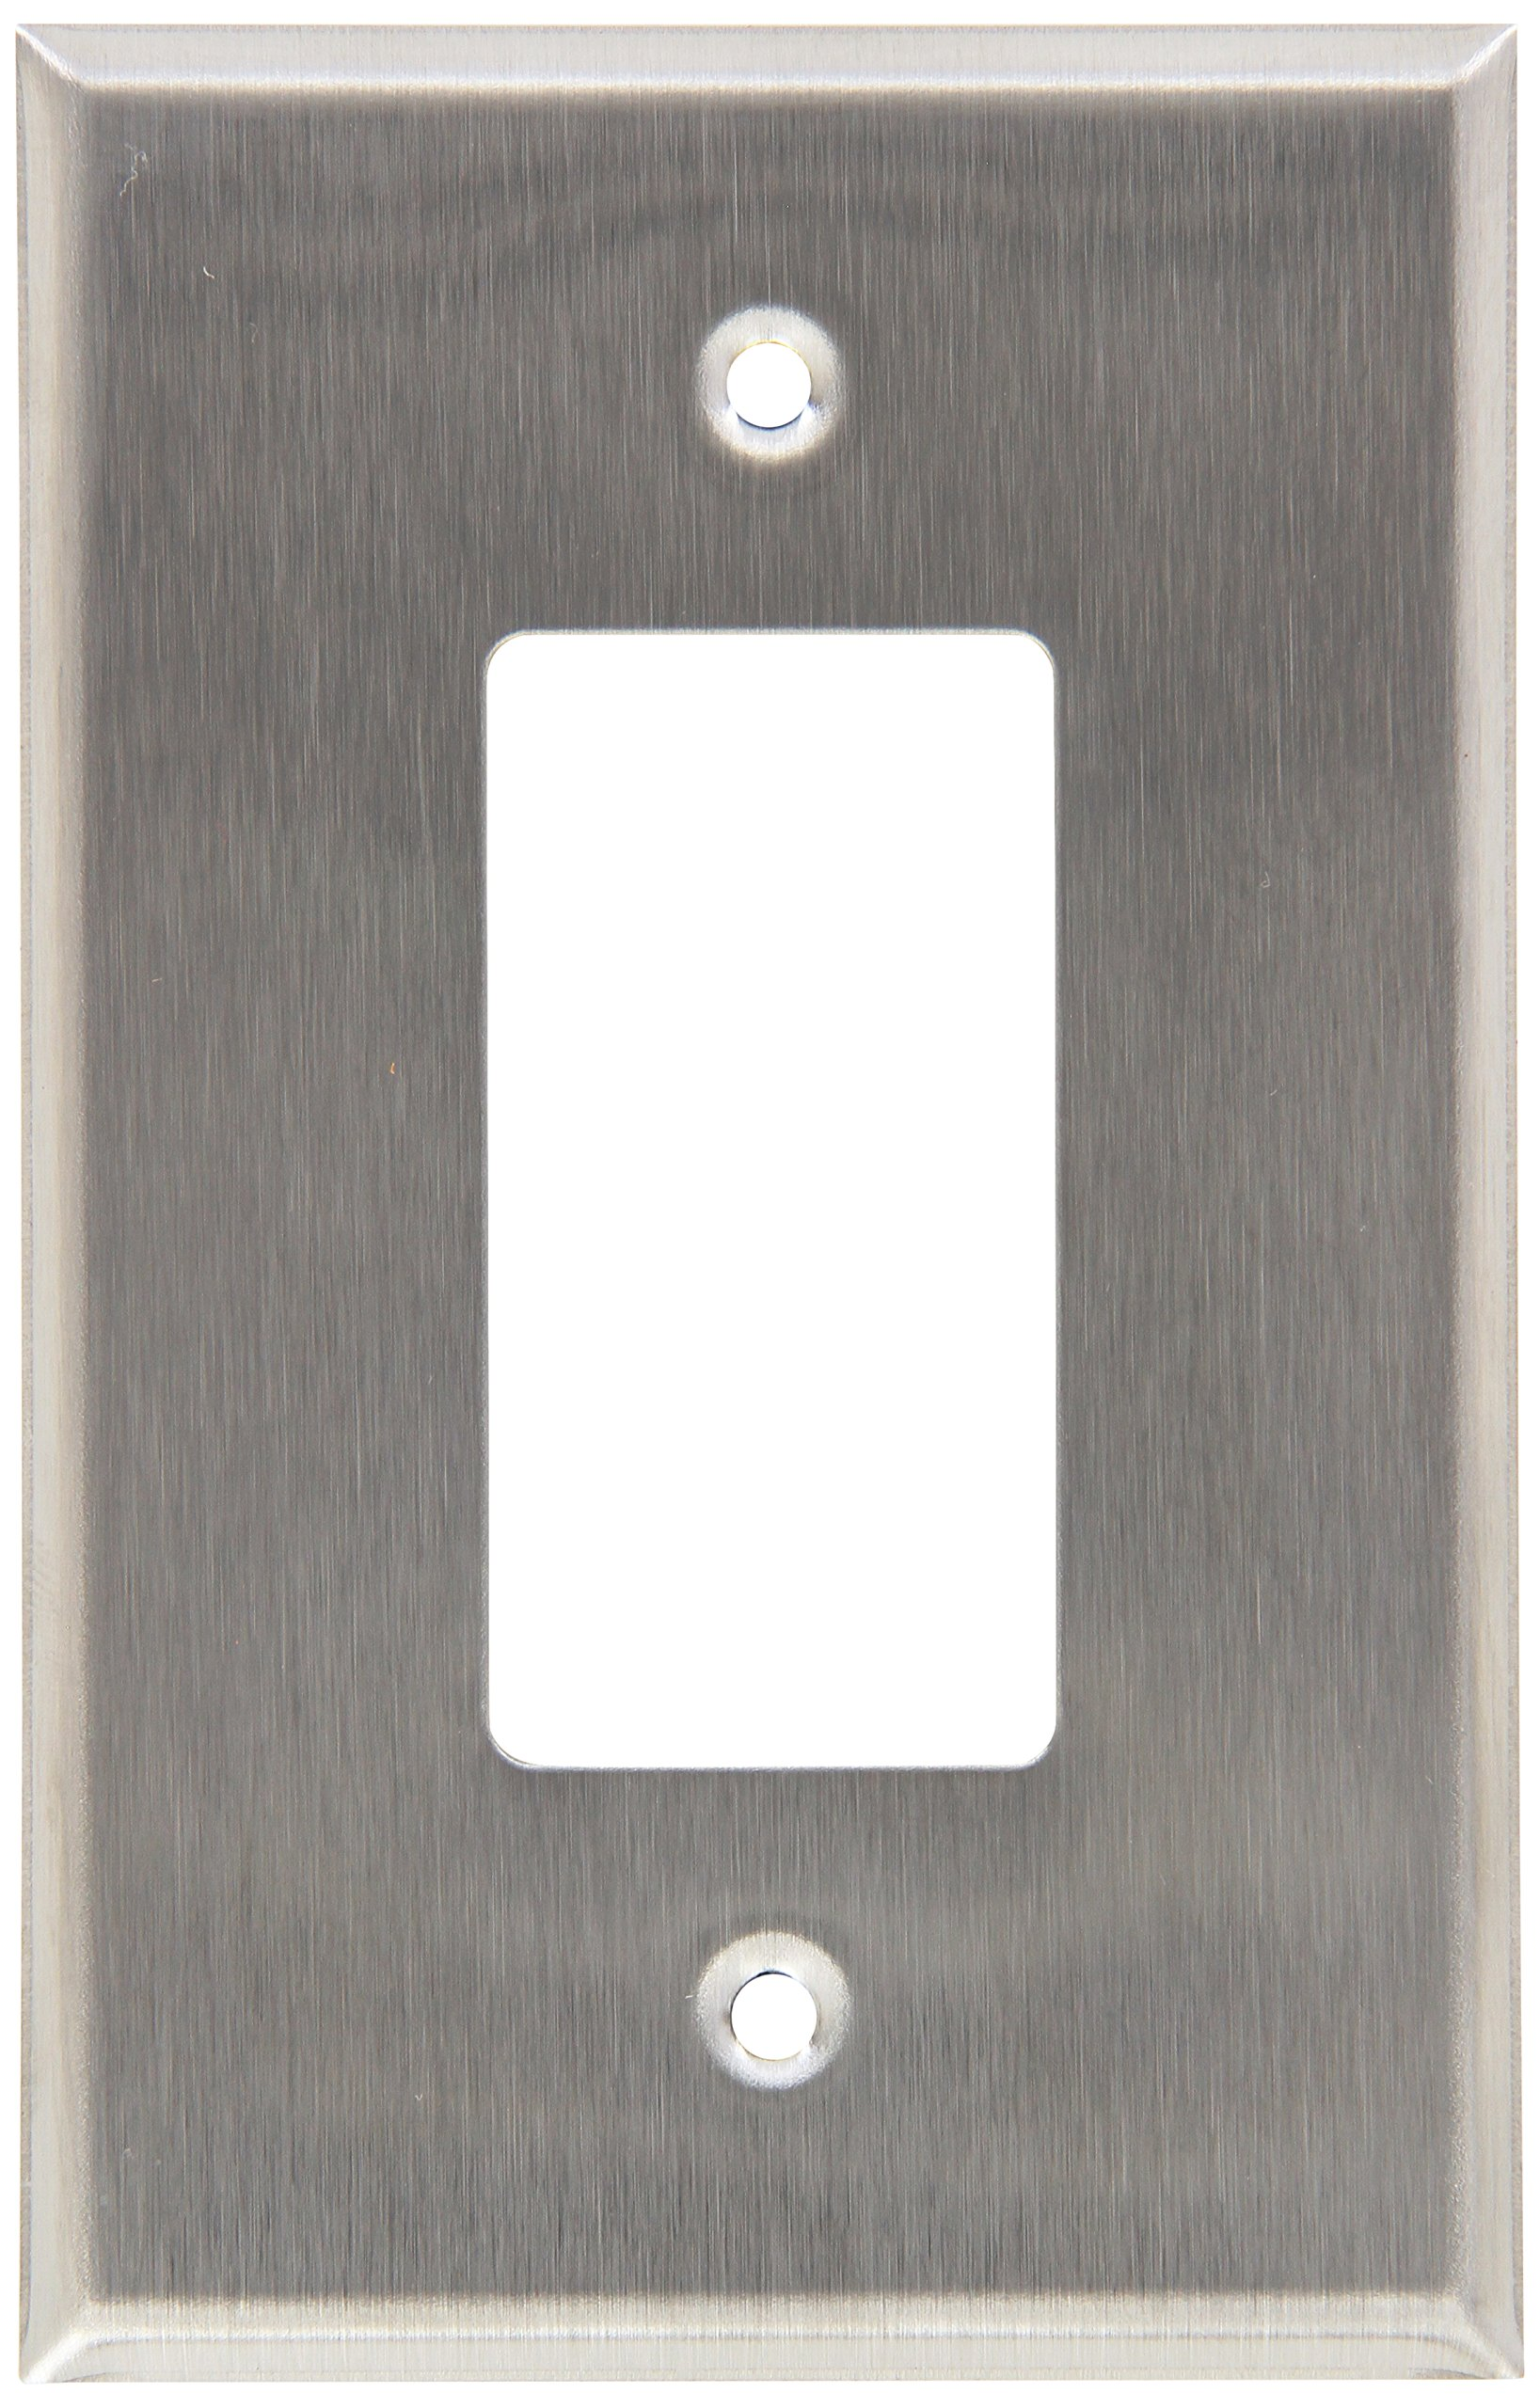 Morris 83740 430 Wall Plate, Oversize Decorative/GFCI, 1 Gang, Stainless Steel